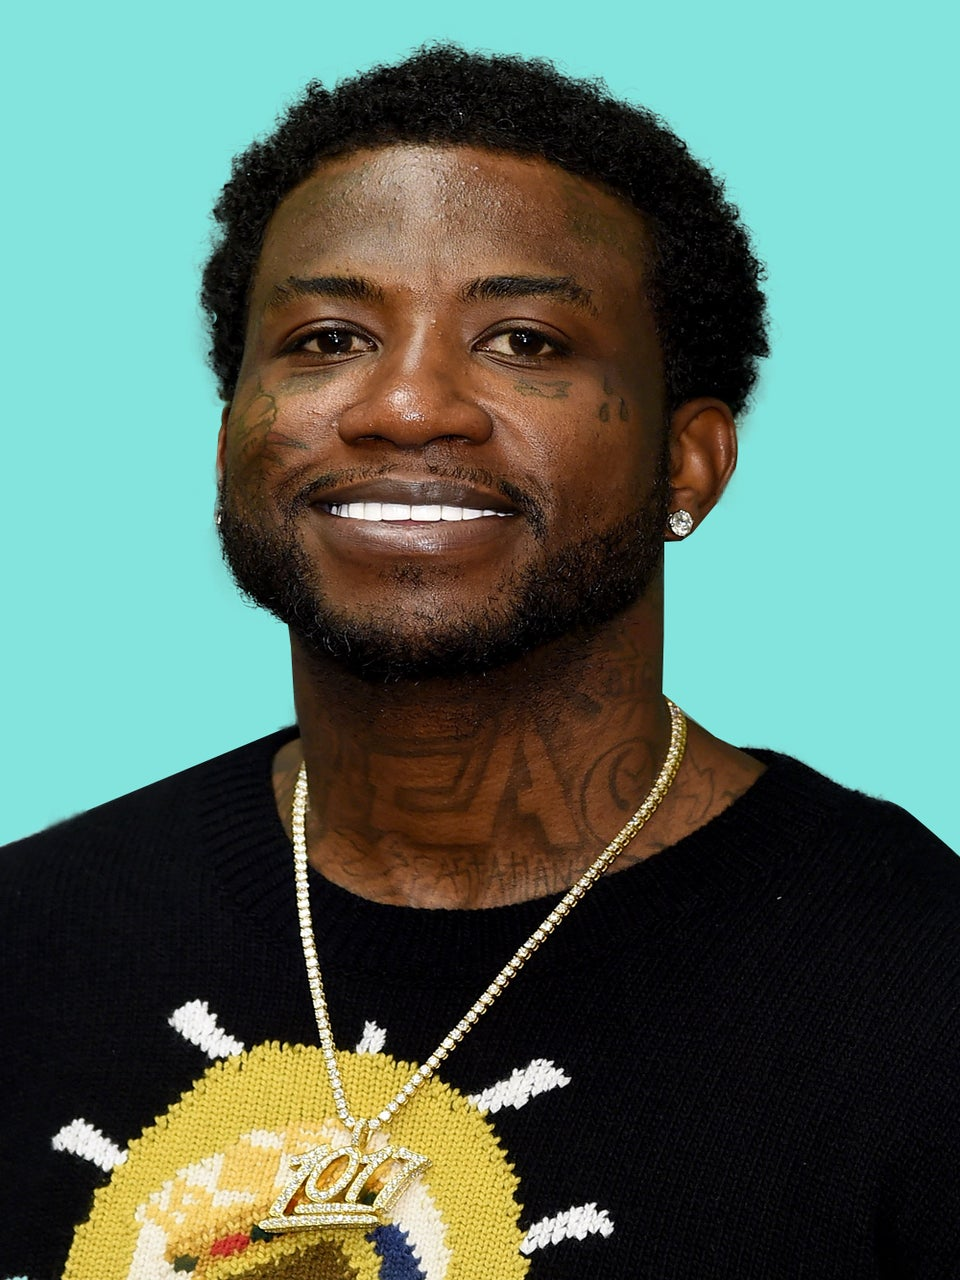 Gucci Mane SaysGoing To Prison '100 Percent' Saved His Life: 'I Was Outta Control'